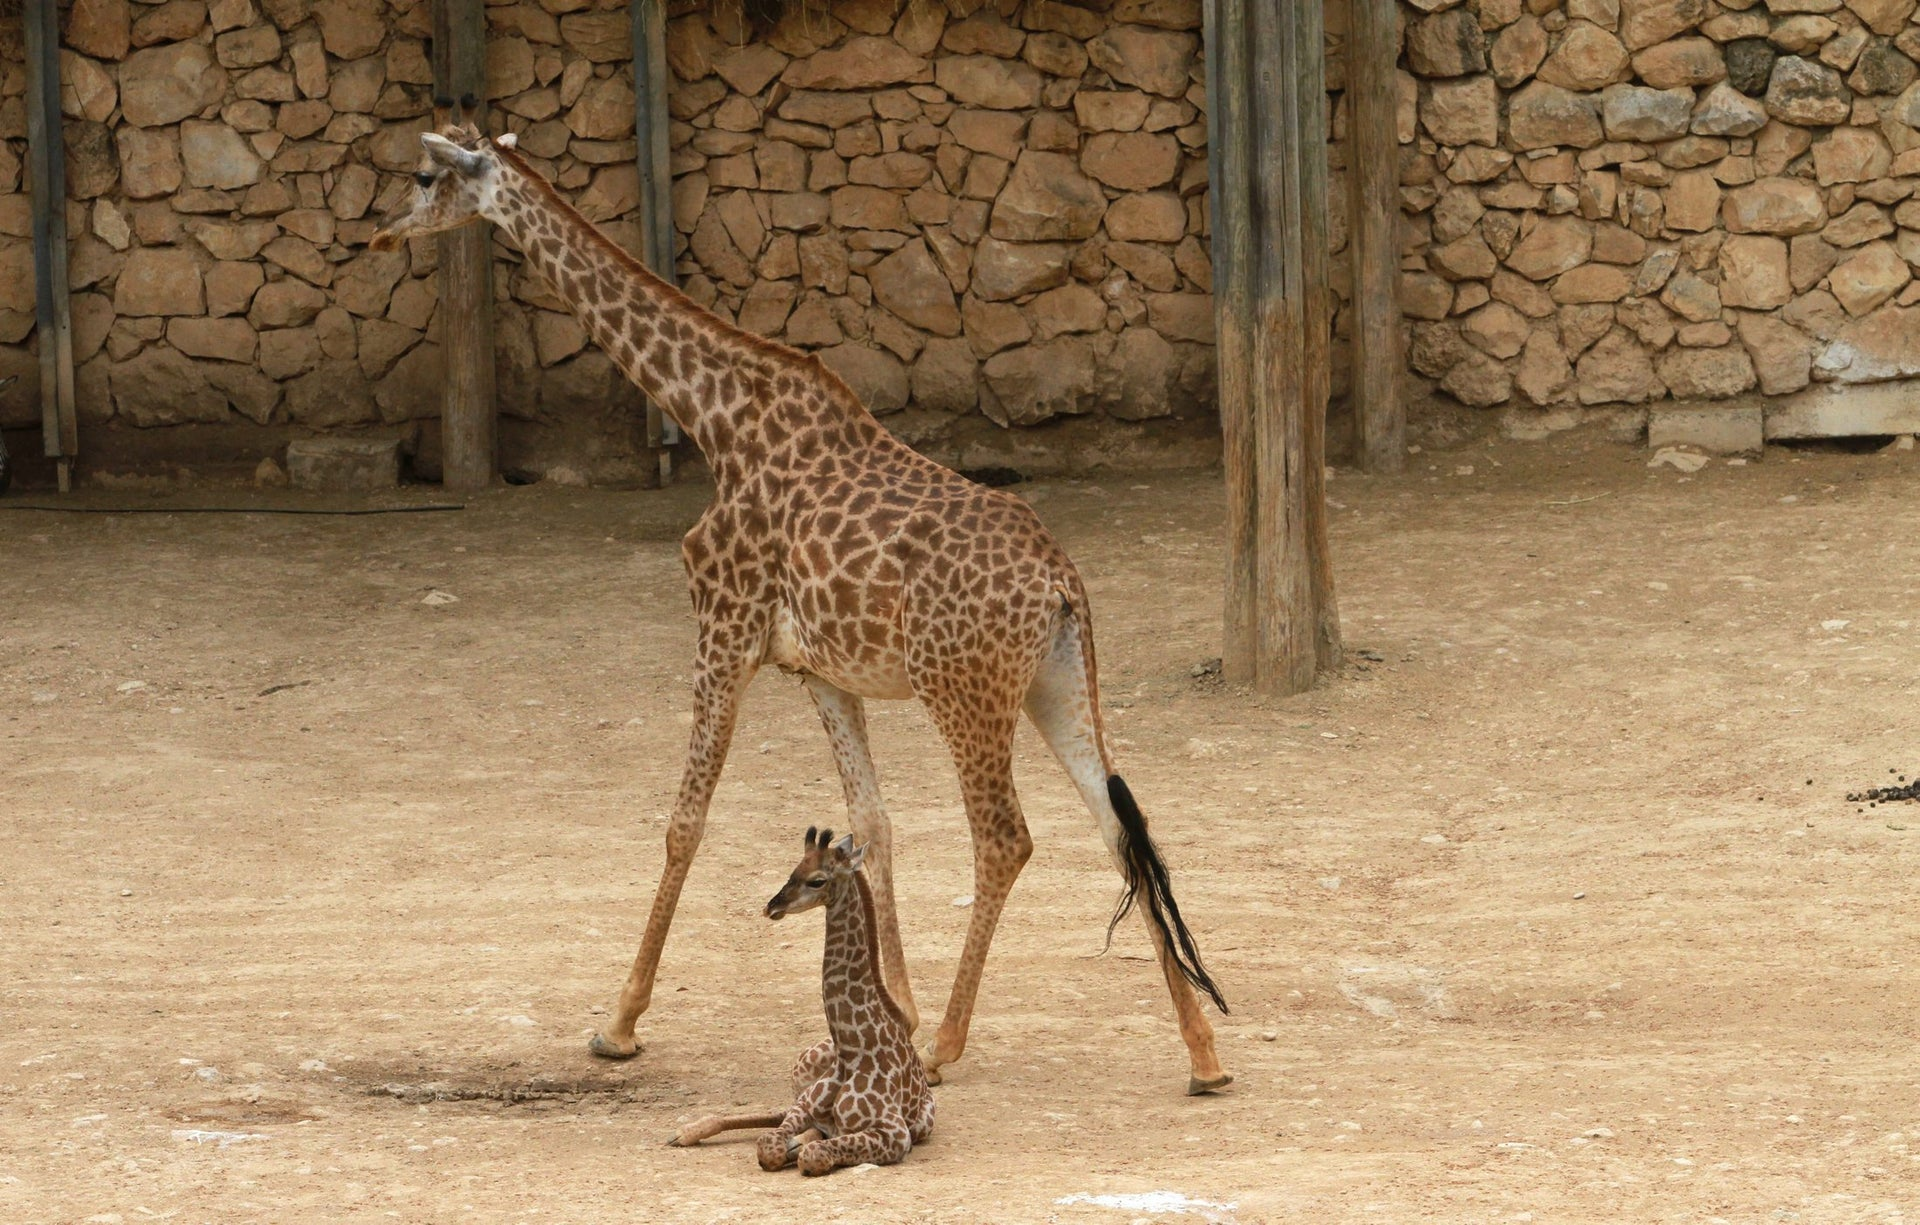 Baby giraffe, 3 weeks old, with her mother at the Jerusalem Biblical Zoo